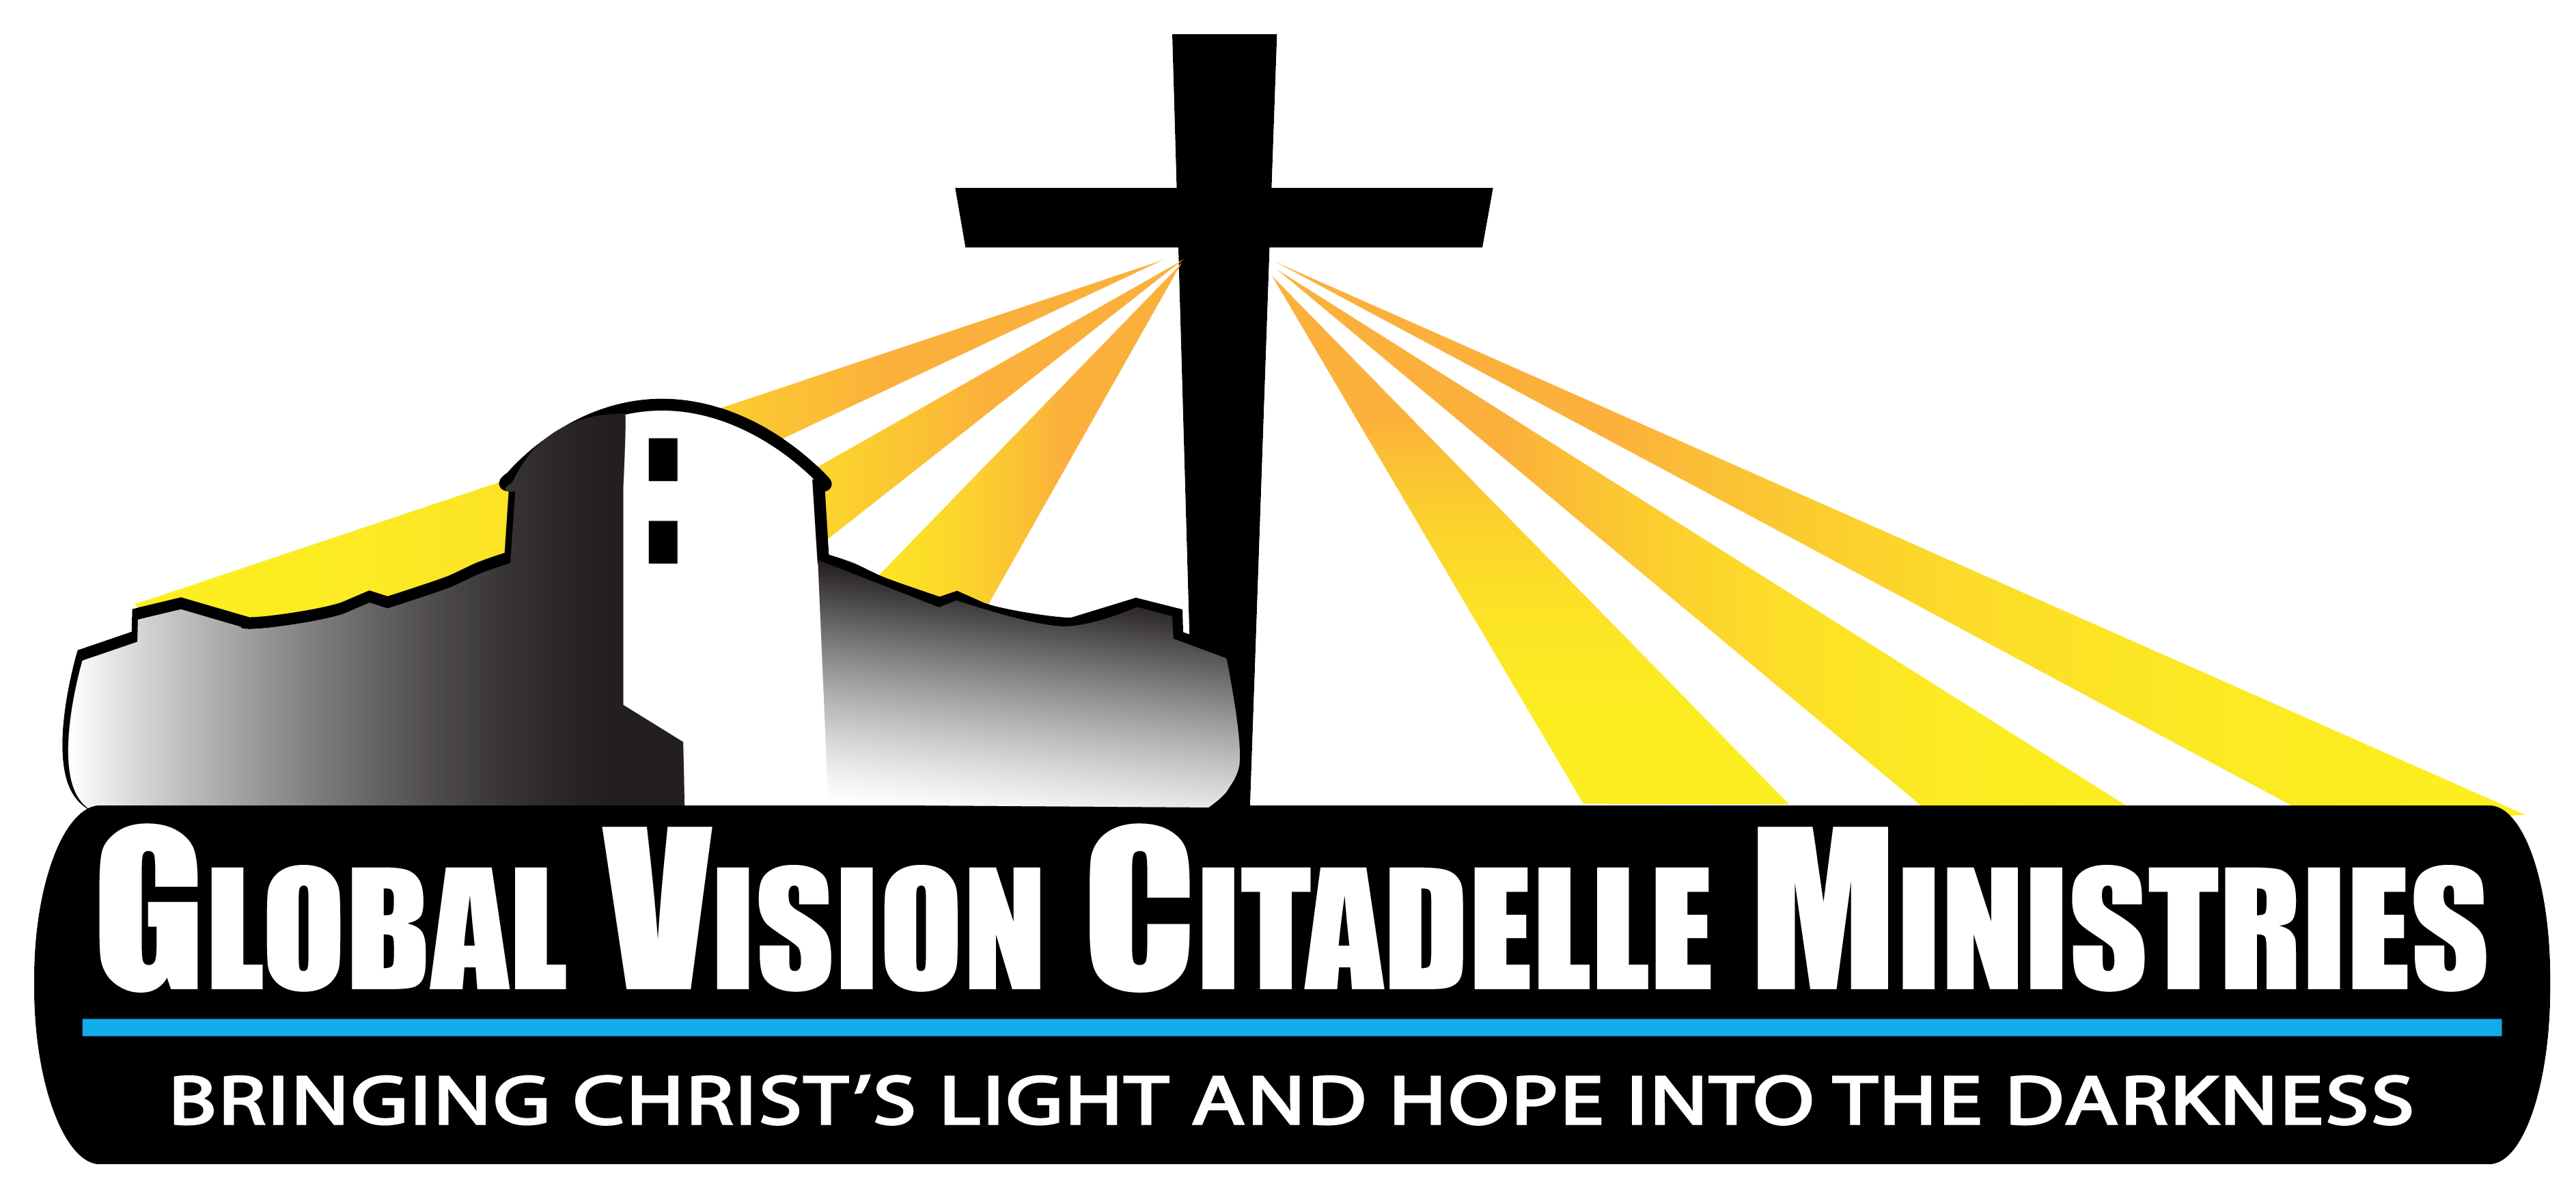 Global Vision Citadelle Ministries Bringing Christ S Light